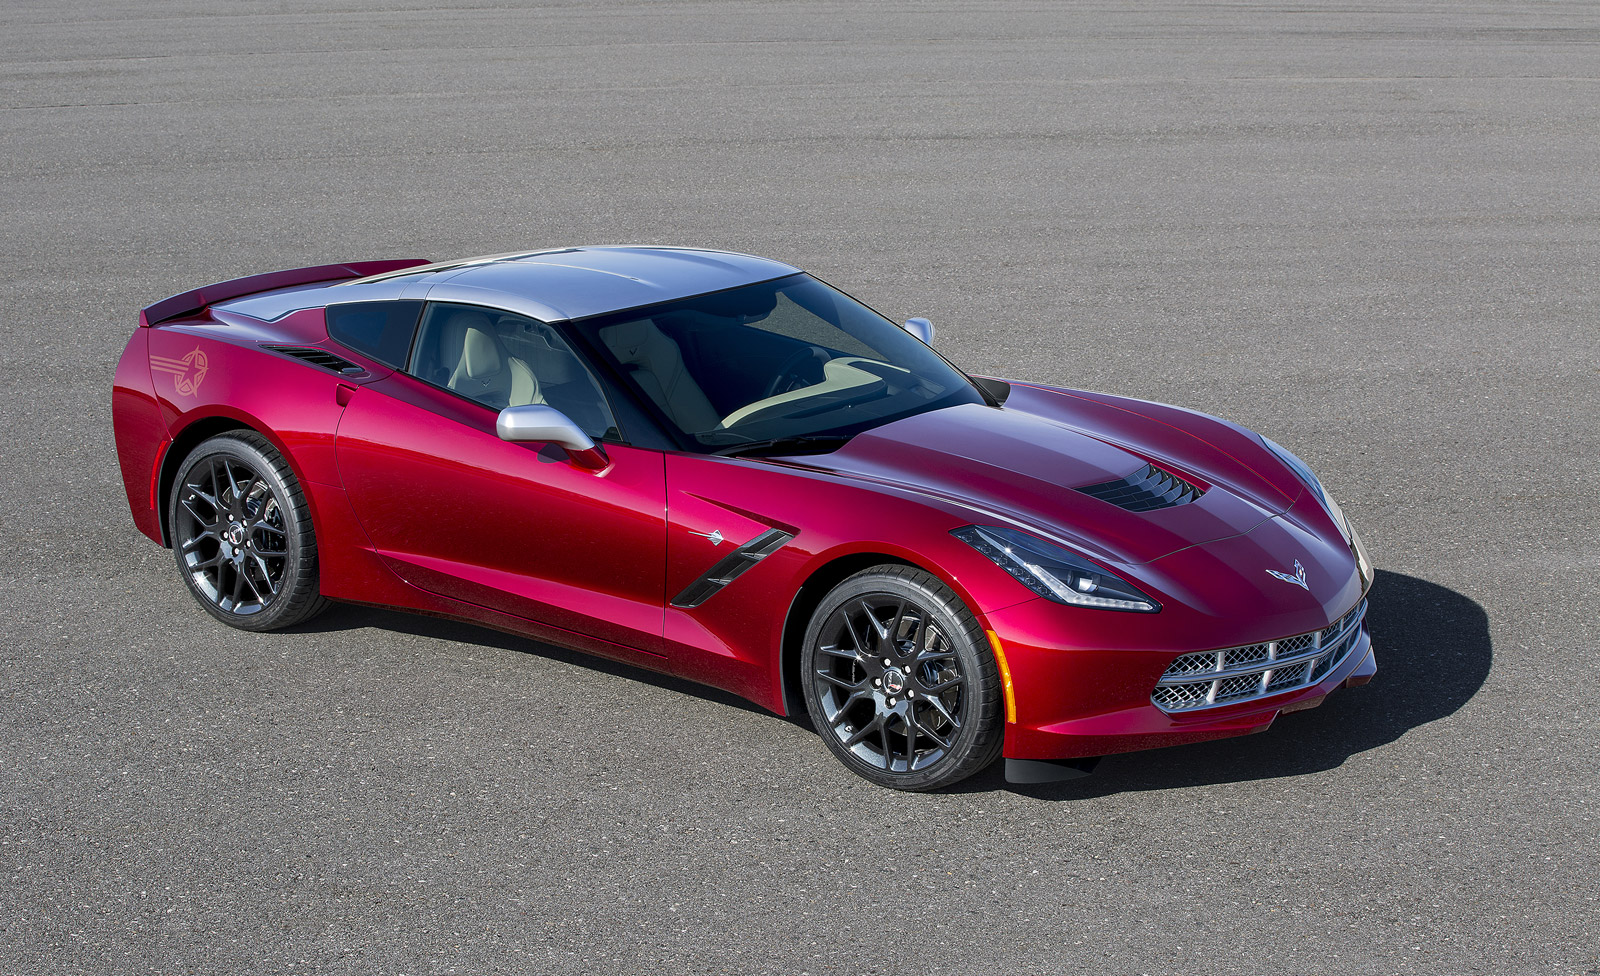 Something Old, Something New For The Chevy Corvette At SEMA